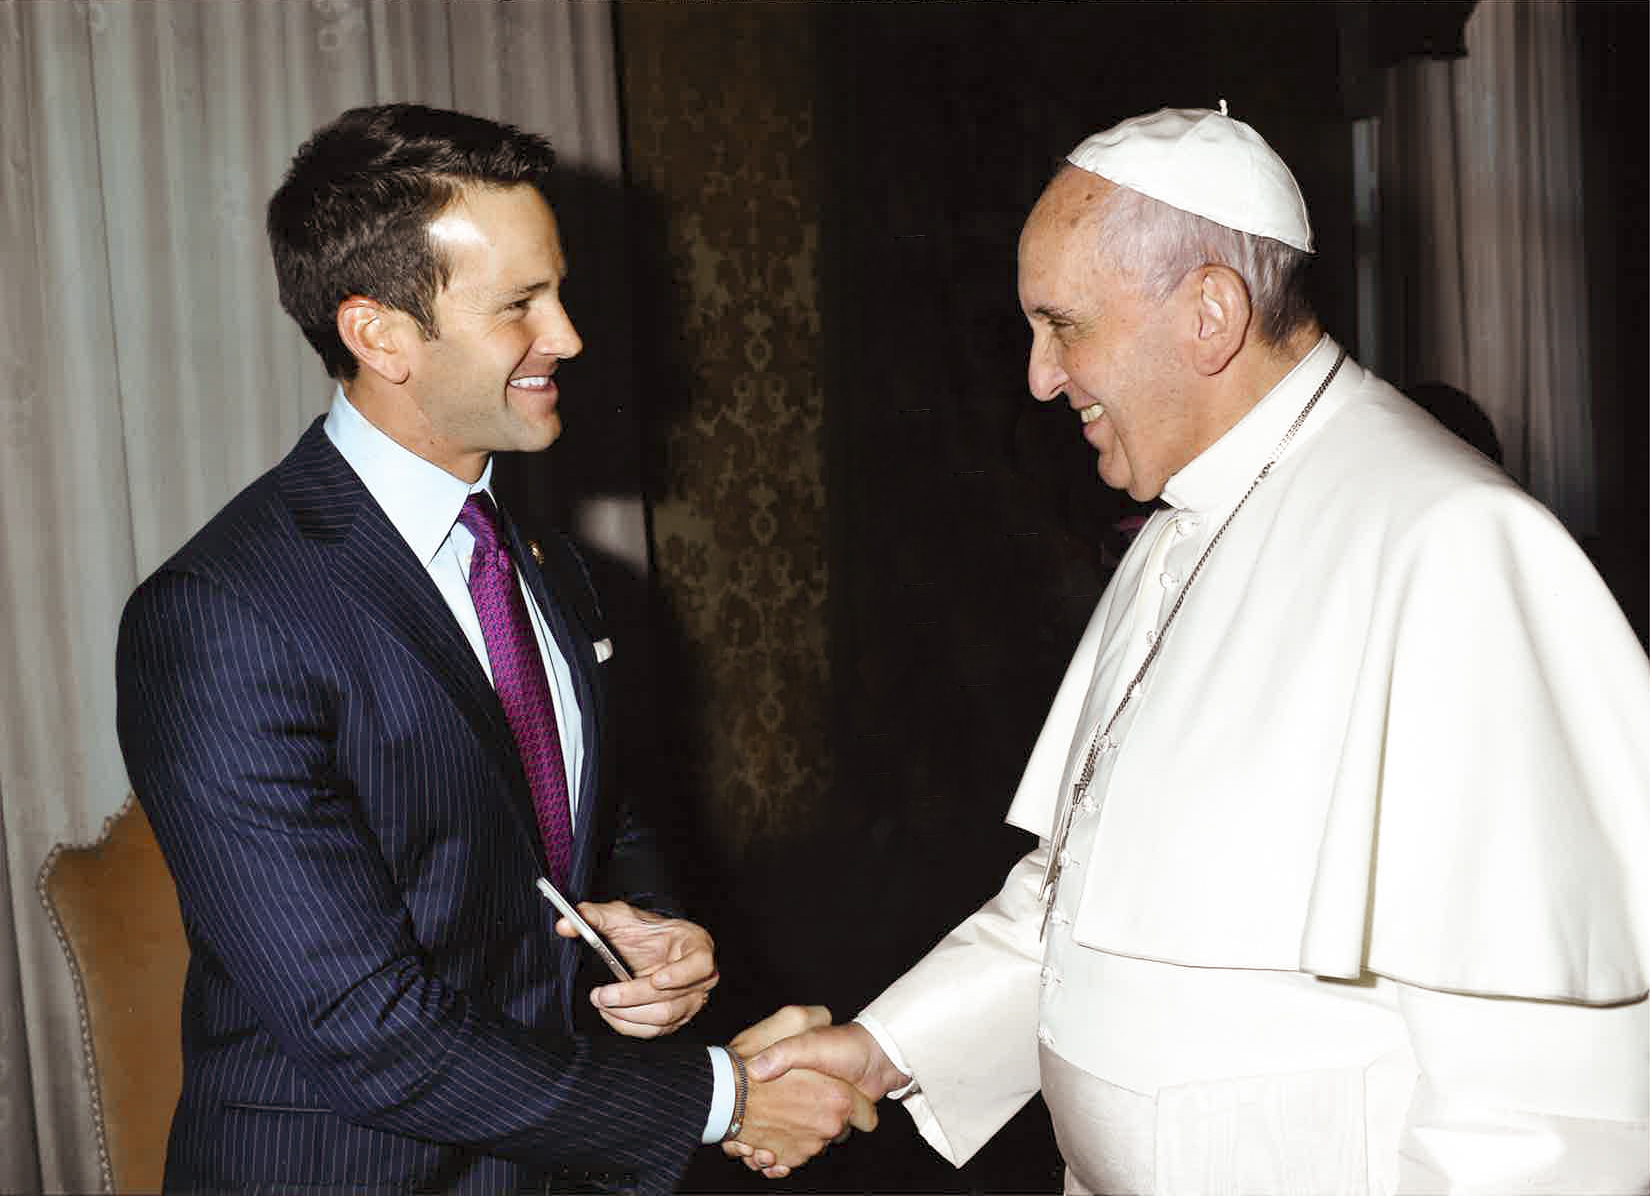 Former Illinois Rep. Aaron Schock with Pope Francis, Jan. 4, 2015.